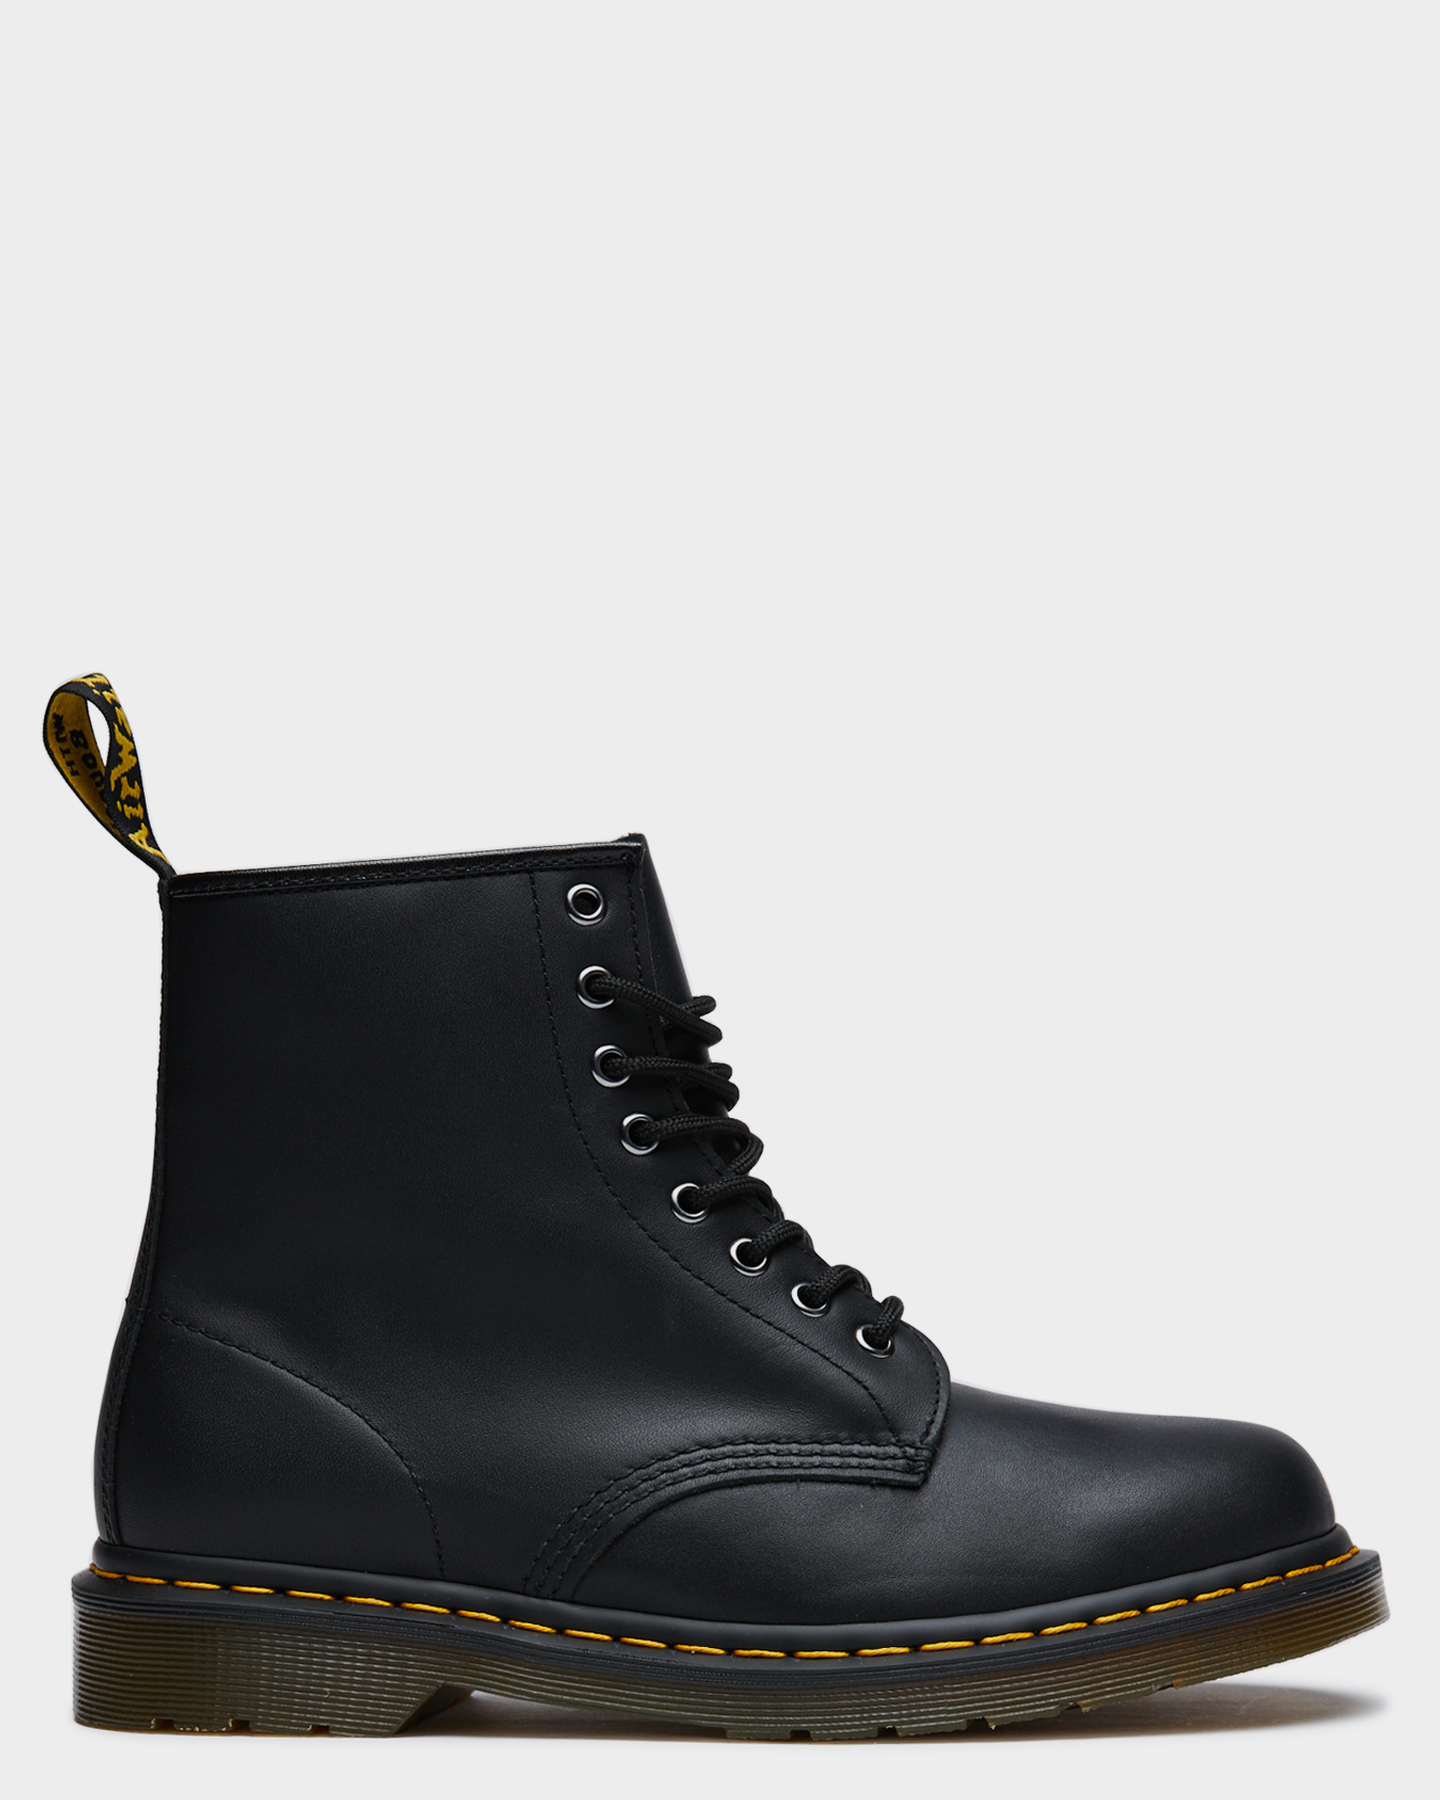 8e82a8eefda Details about NEW Dr. Martens Shoes Gents 1460 8 Eye Nappa Boot Black Men  Footwear